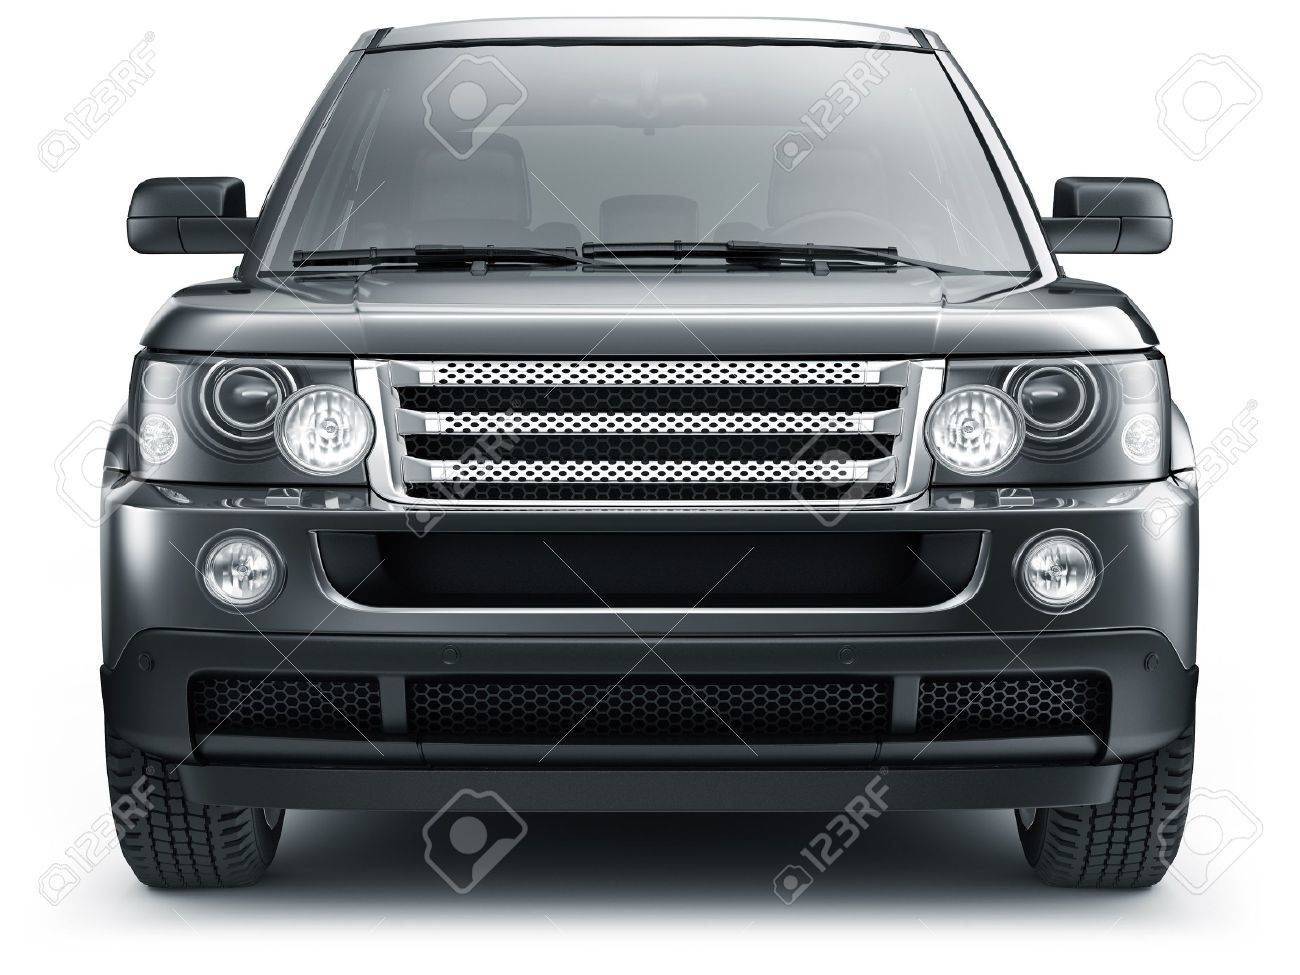 Front View Of Suv Car Stock Photo Picture And Royalty Free Image